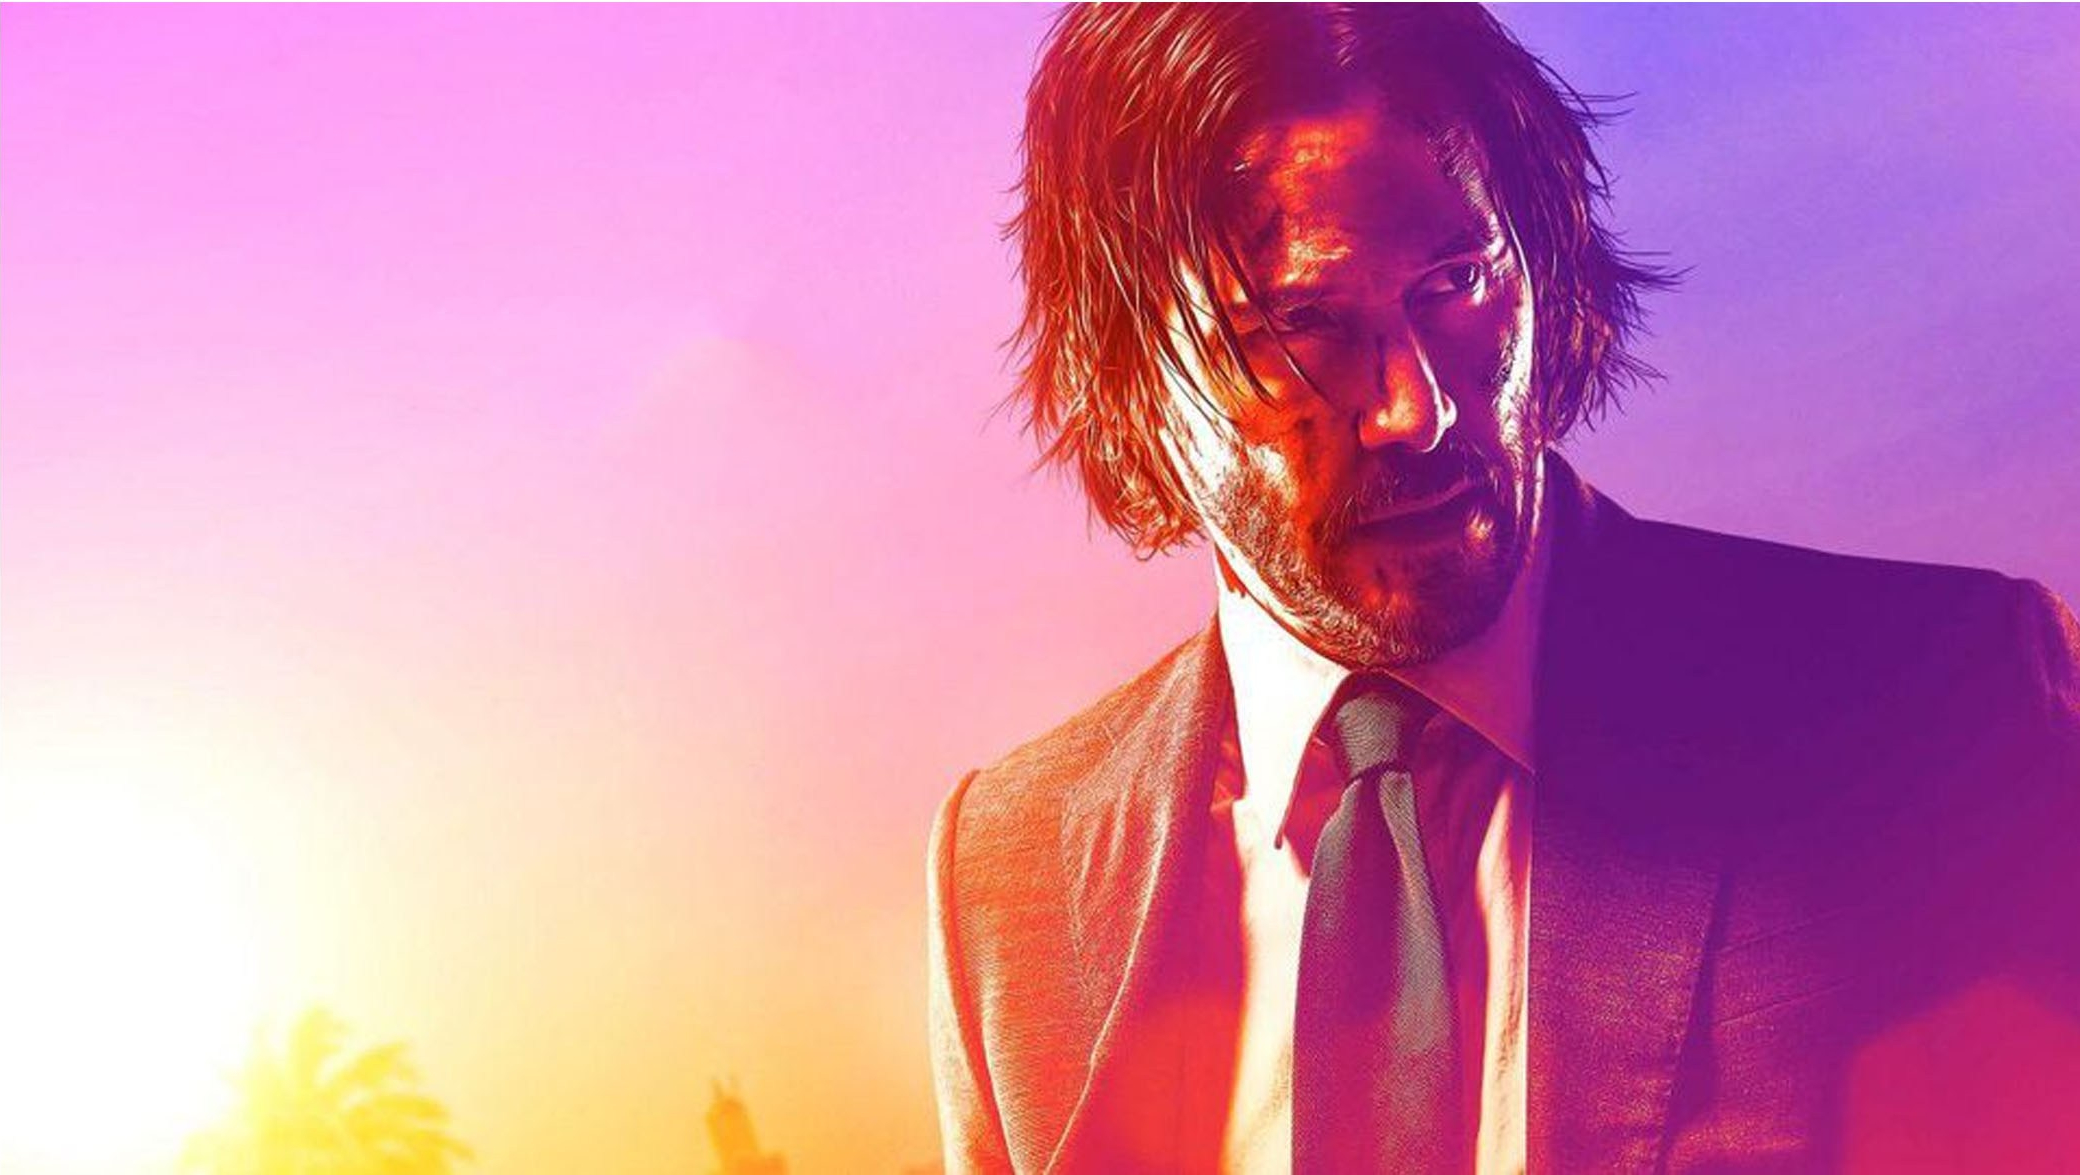 Shorty: John Wick: Chapter 3 – Parabellum